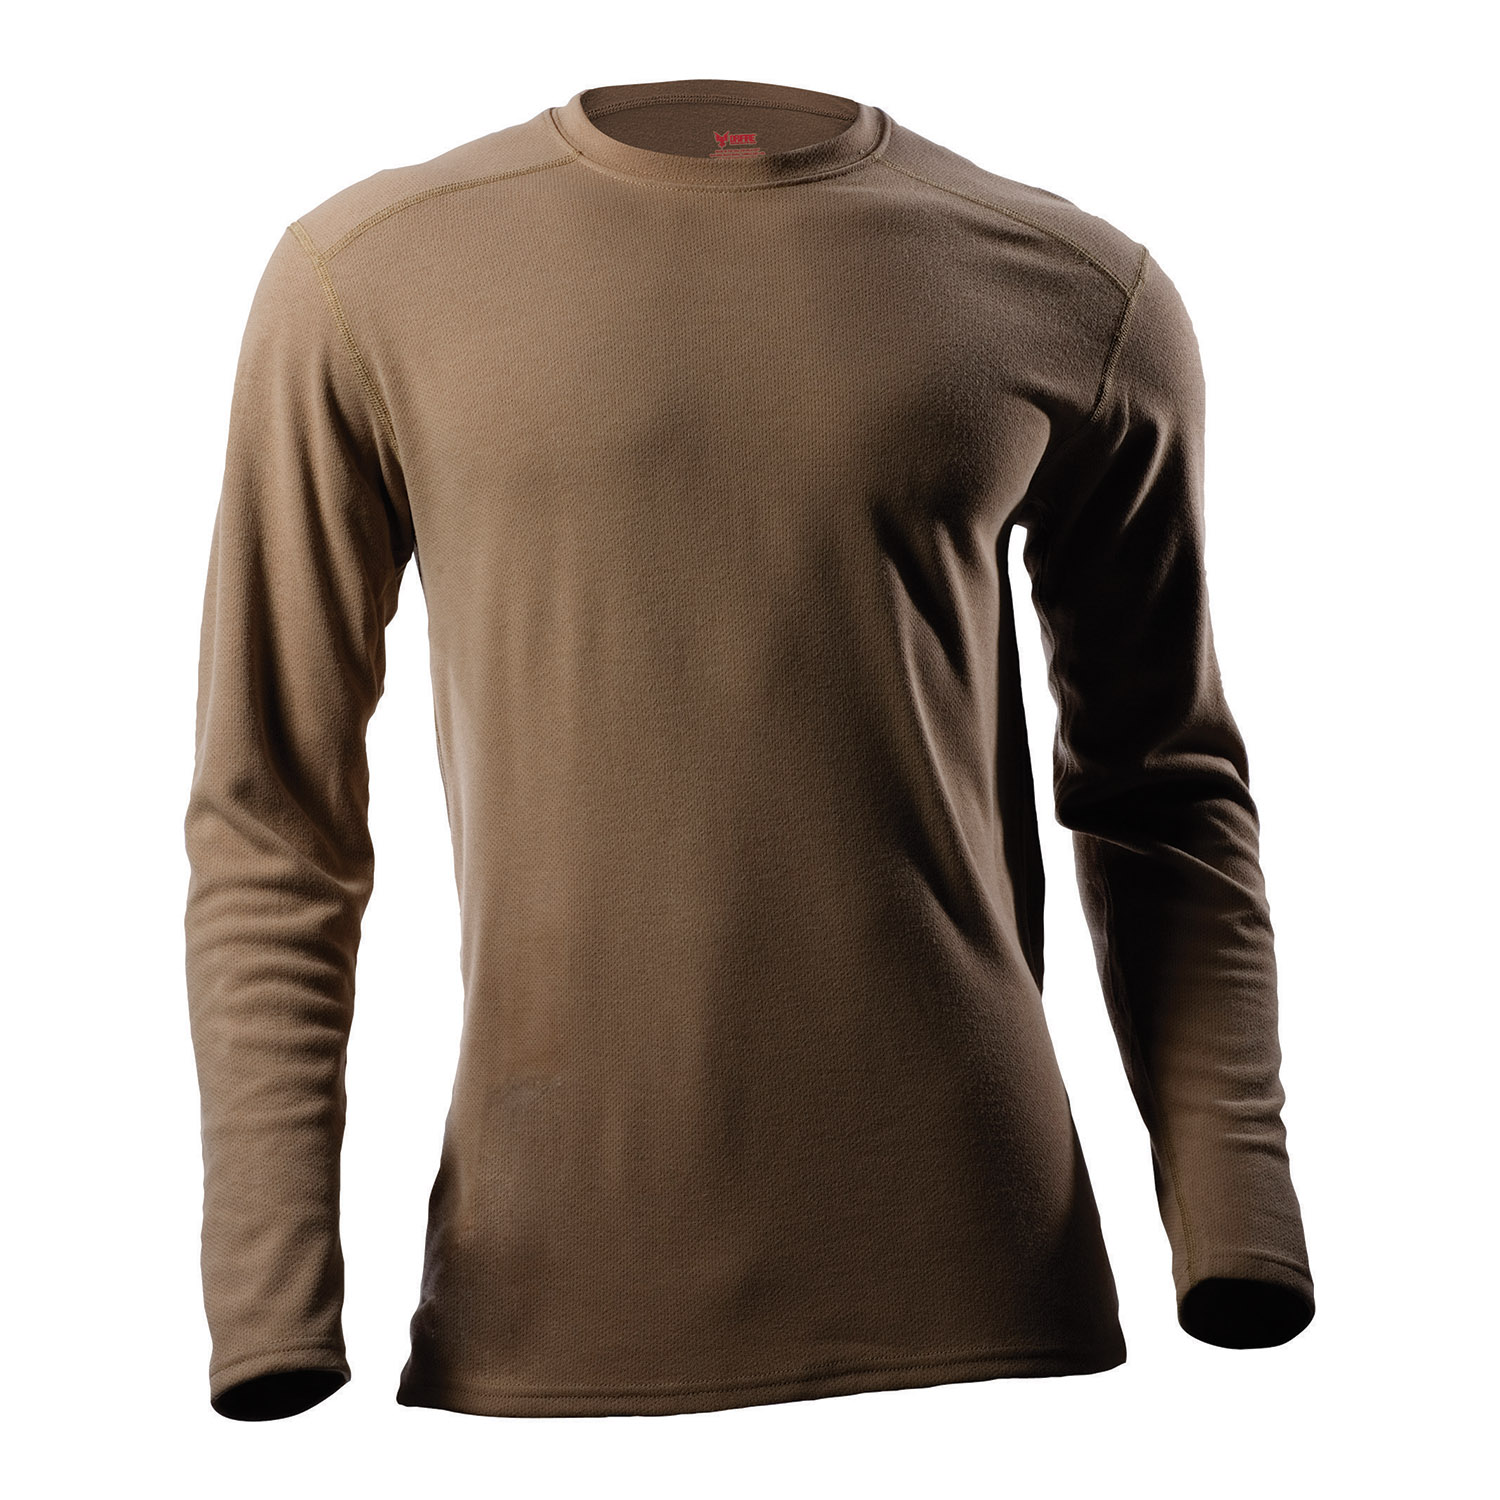 DRIFIRE Midweight Long Sleeve T-Shirt